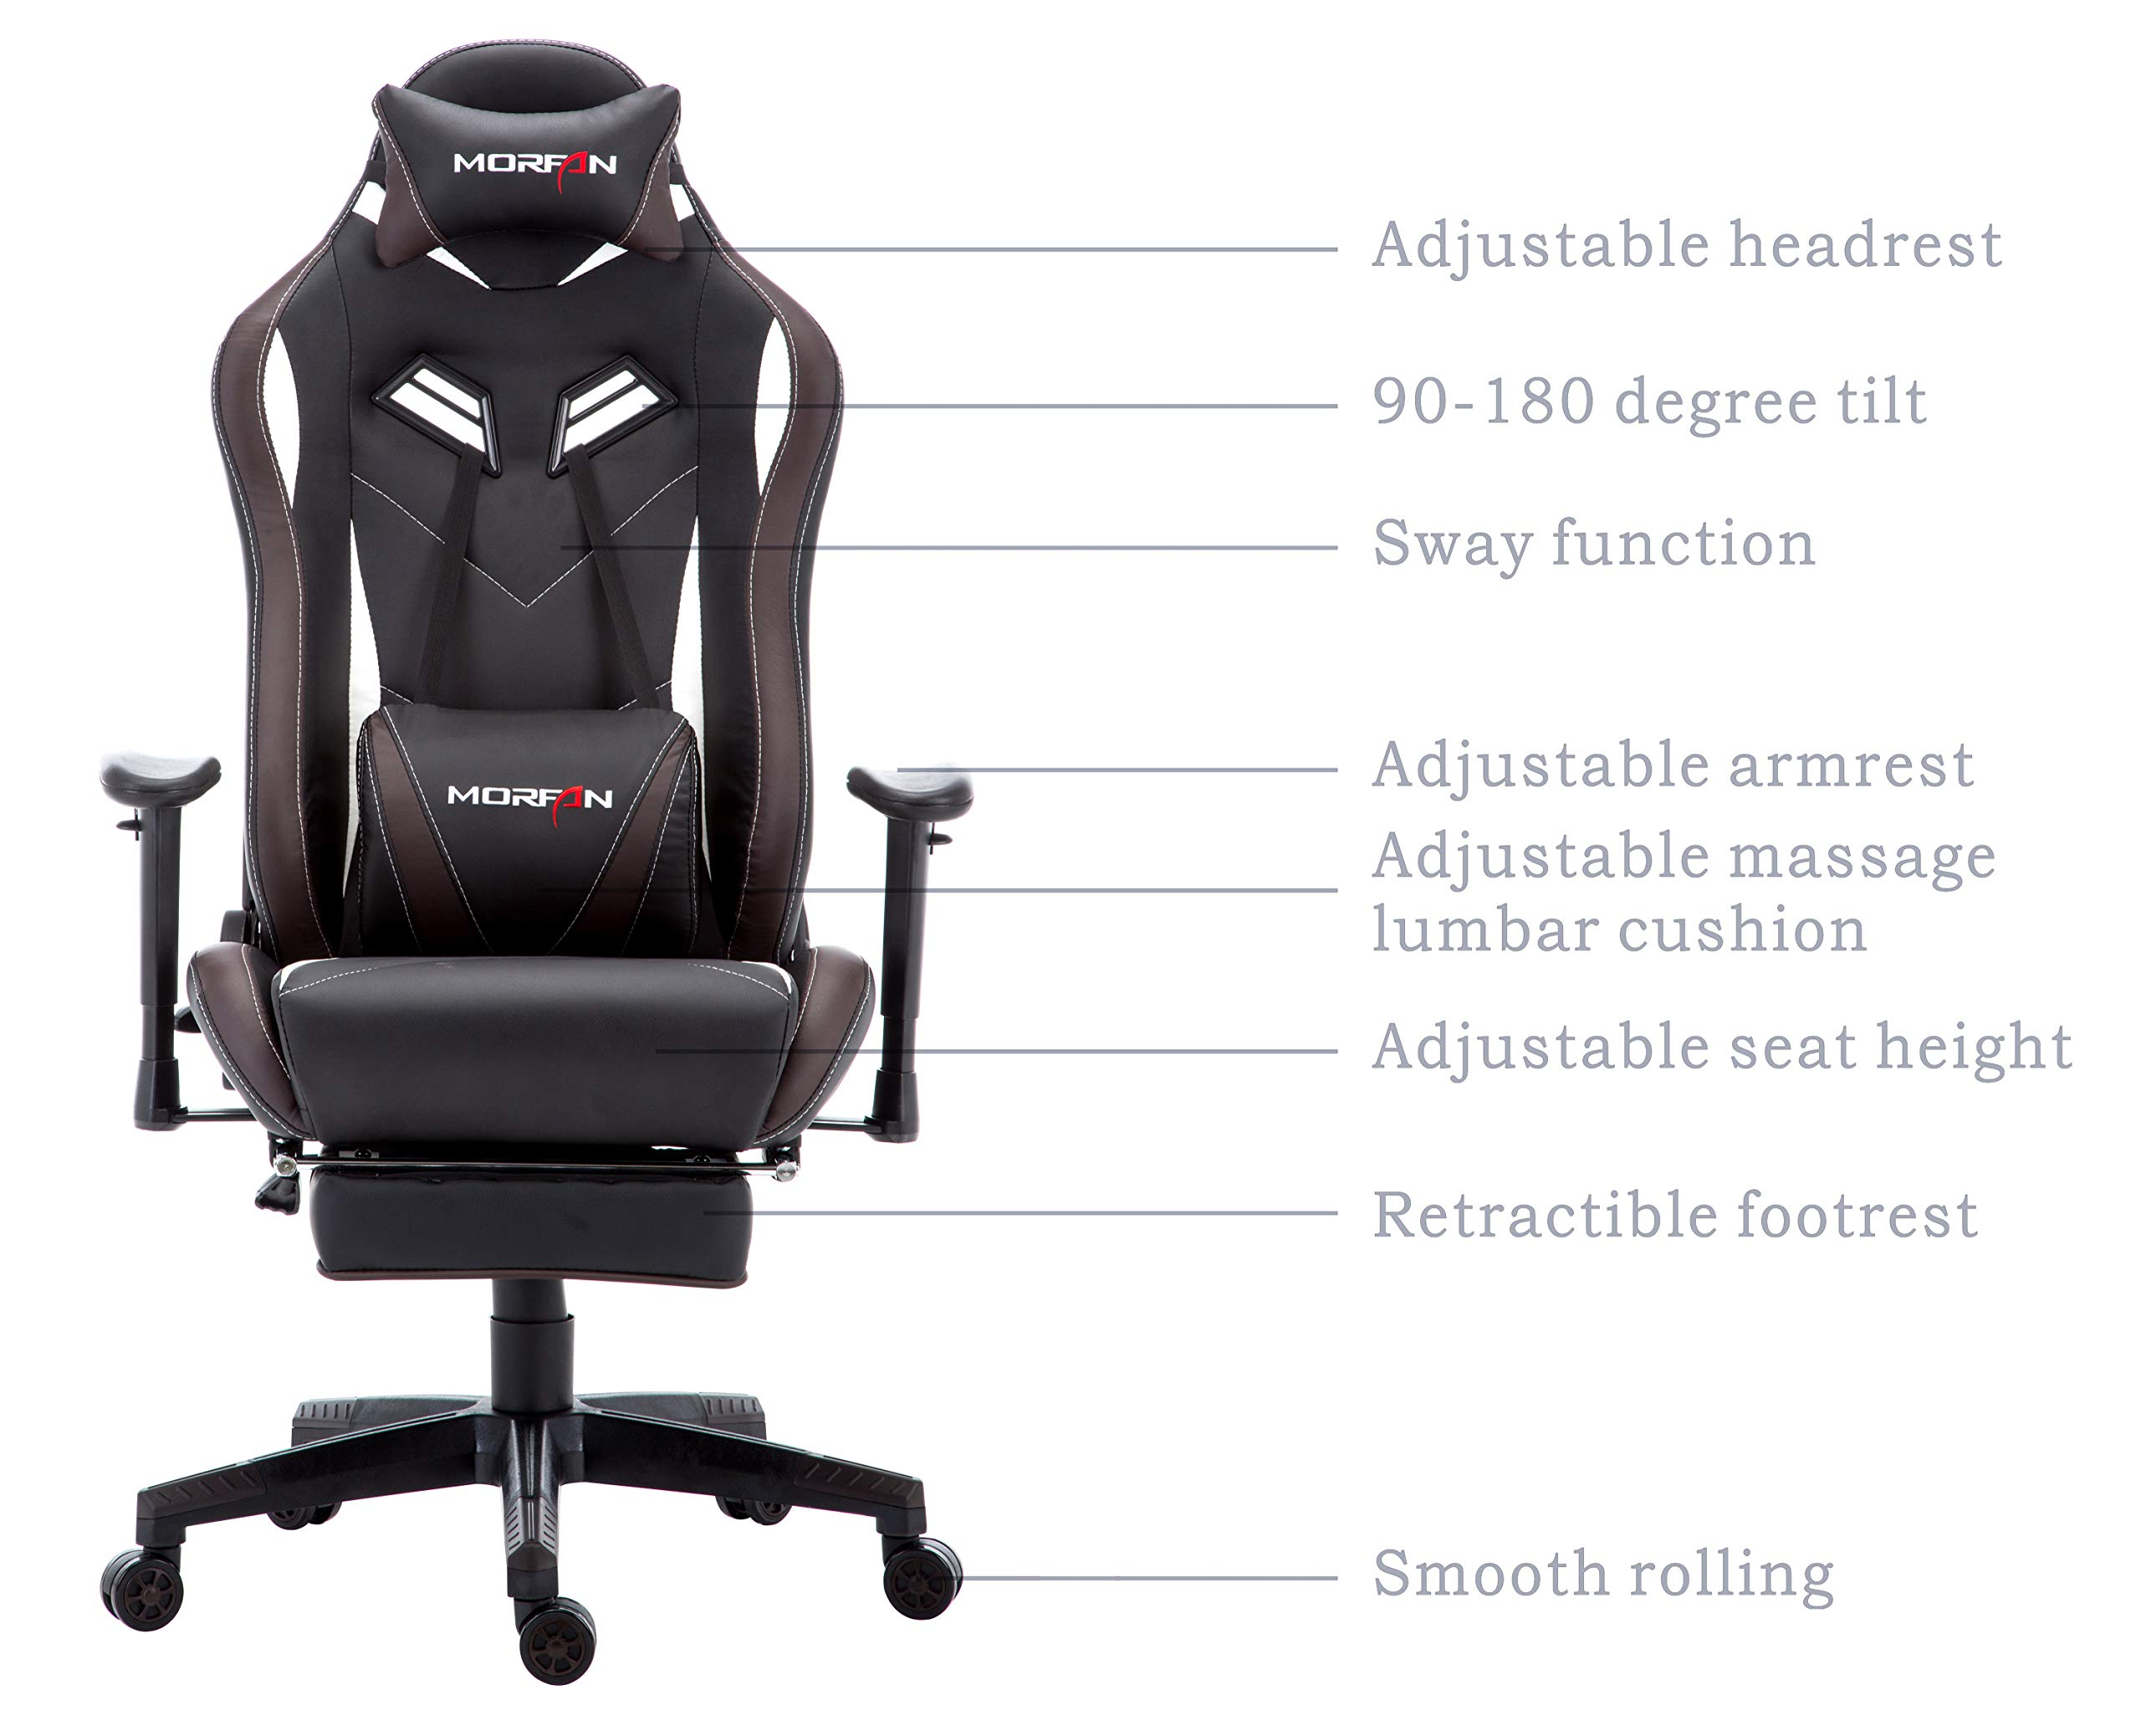 Morfan Gaming Chair Large Size Massage Function Ergonomic Racing Style PC Computer Office Chair with Retractable Footrest & Adjustable Lumbar and Headrest Pillows (Black/Brown) by MORFAN (Image #6)